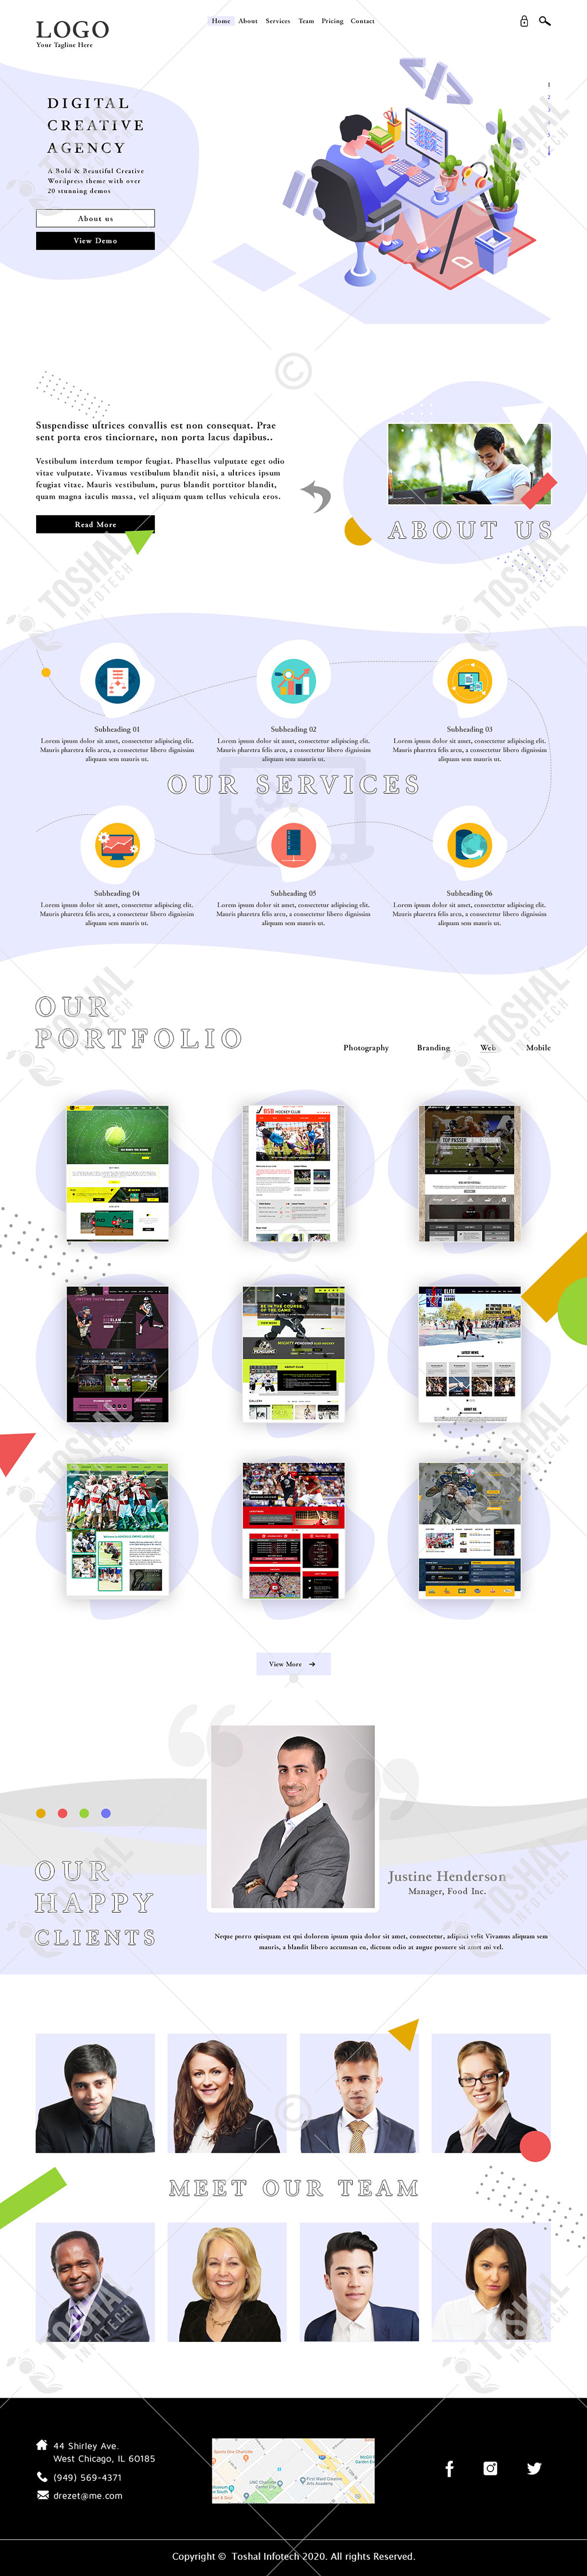 Digital Creative Agency Theme